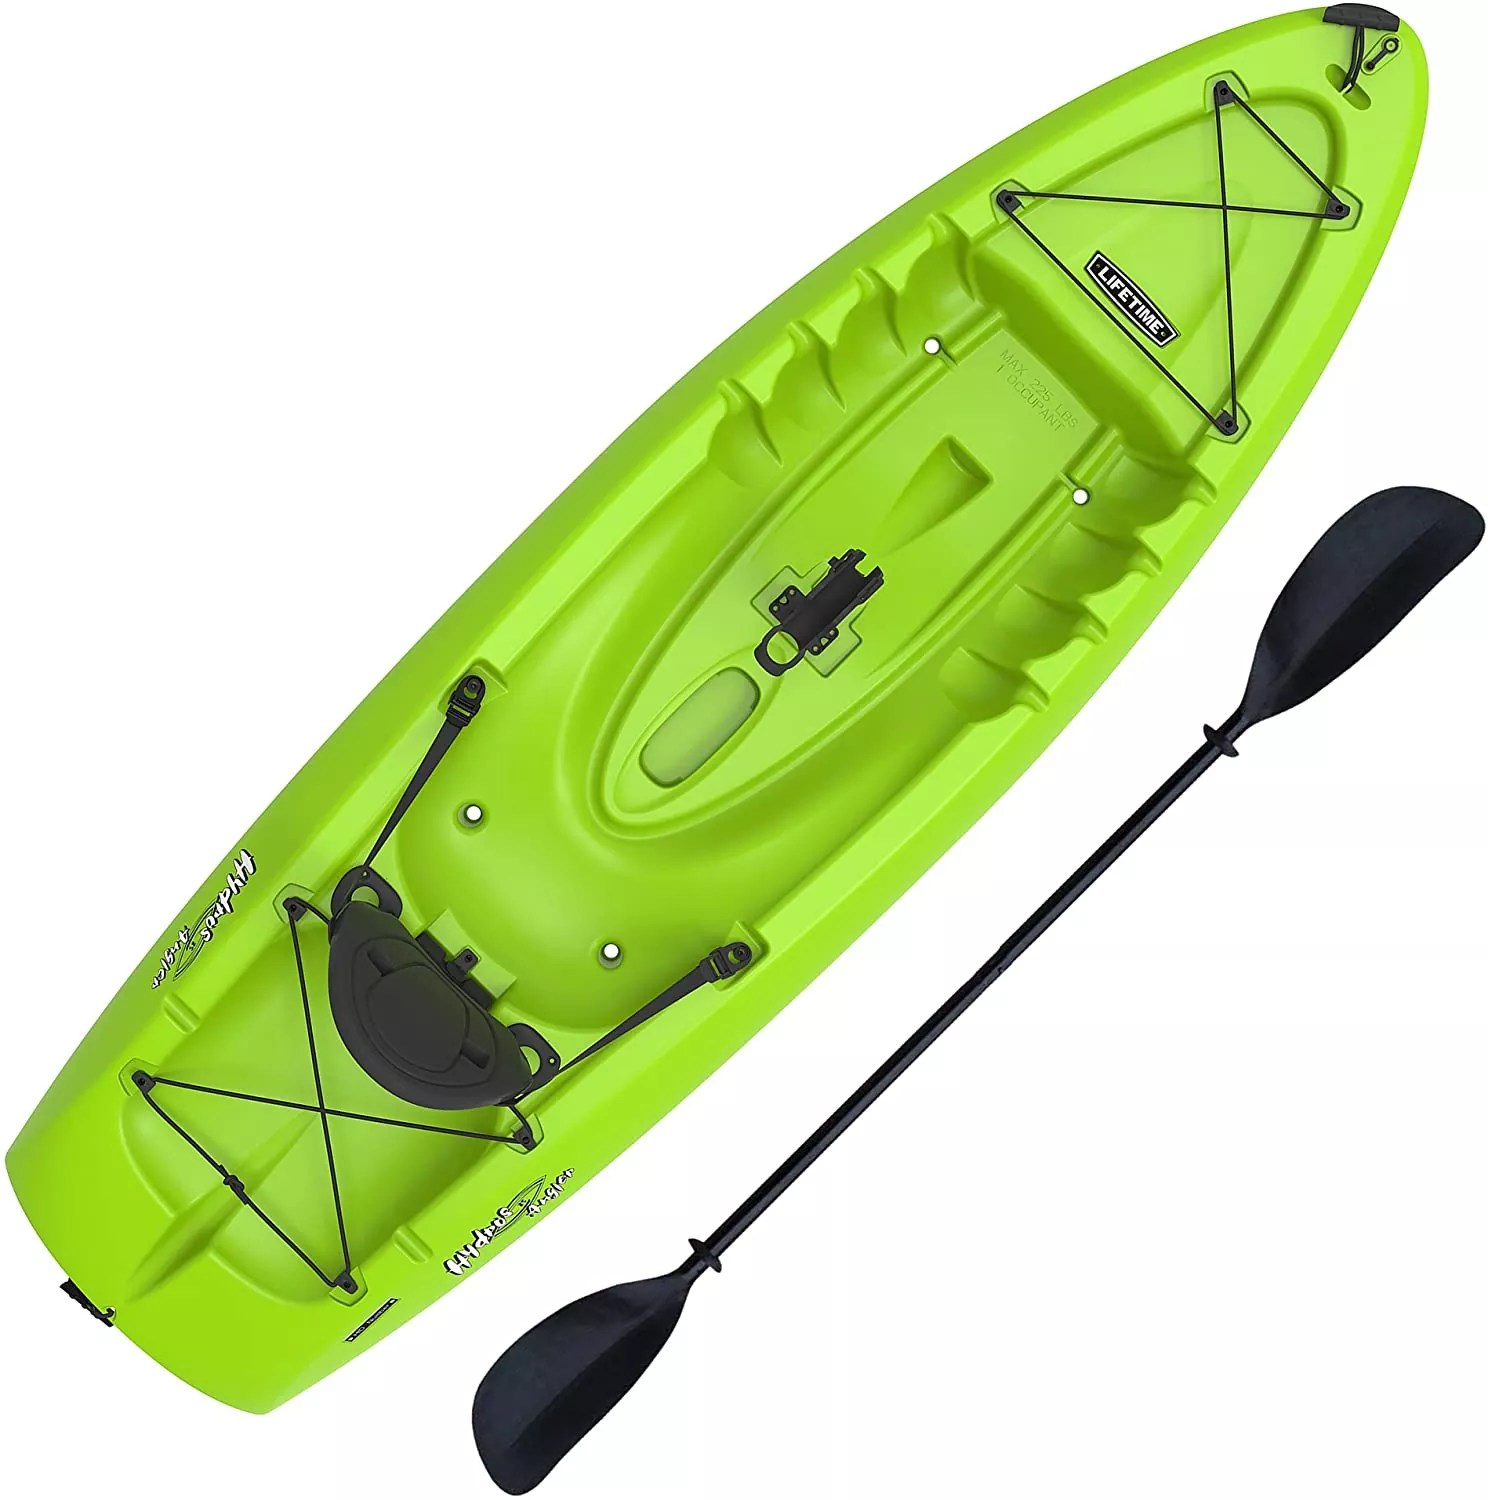 Lifetime Hydros Angler 85 Fishing Kayak (Paddle Included), Lime Green, 101 Inches